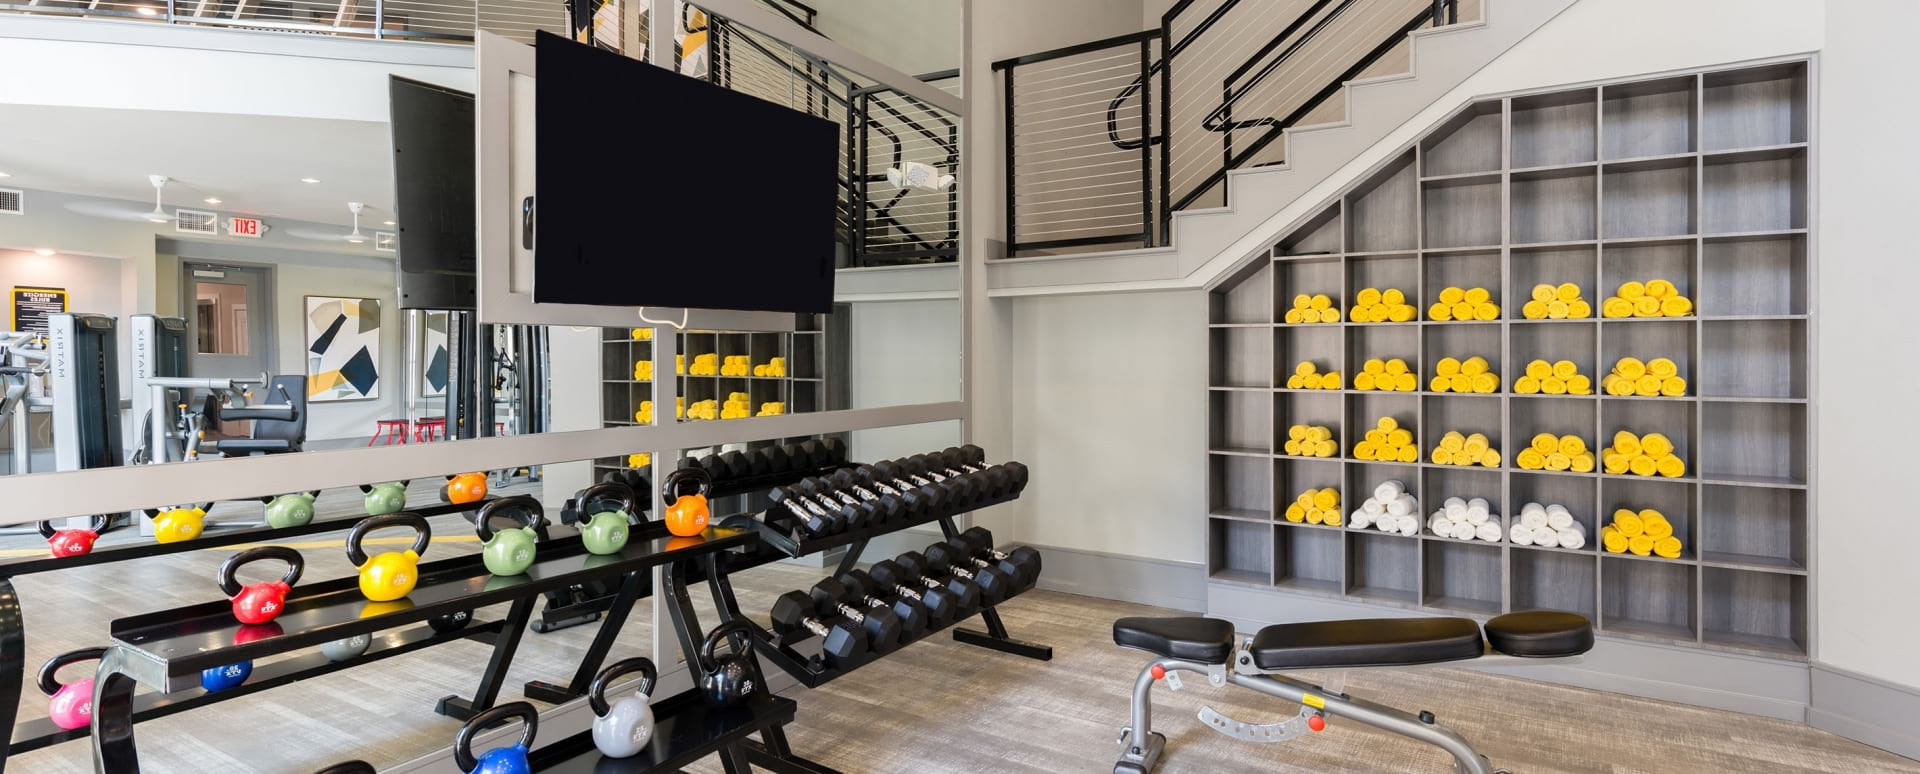 Fitness center at apartments in Allen, TX